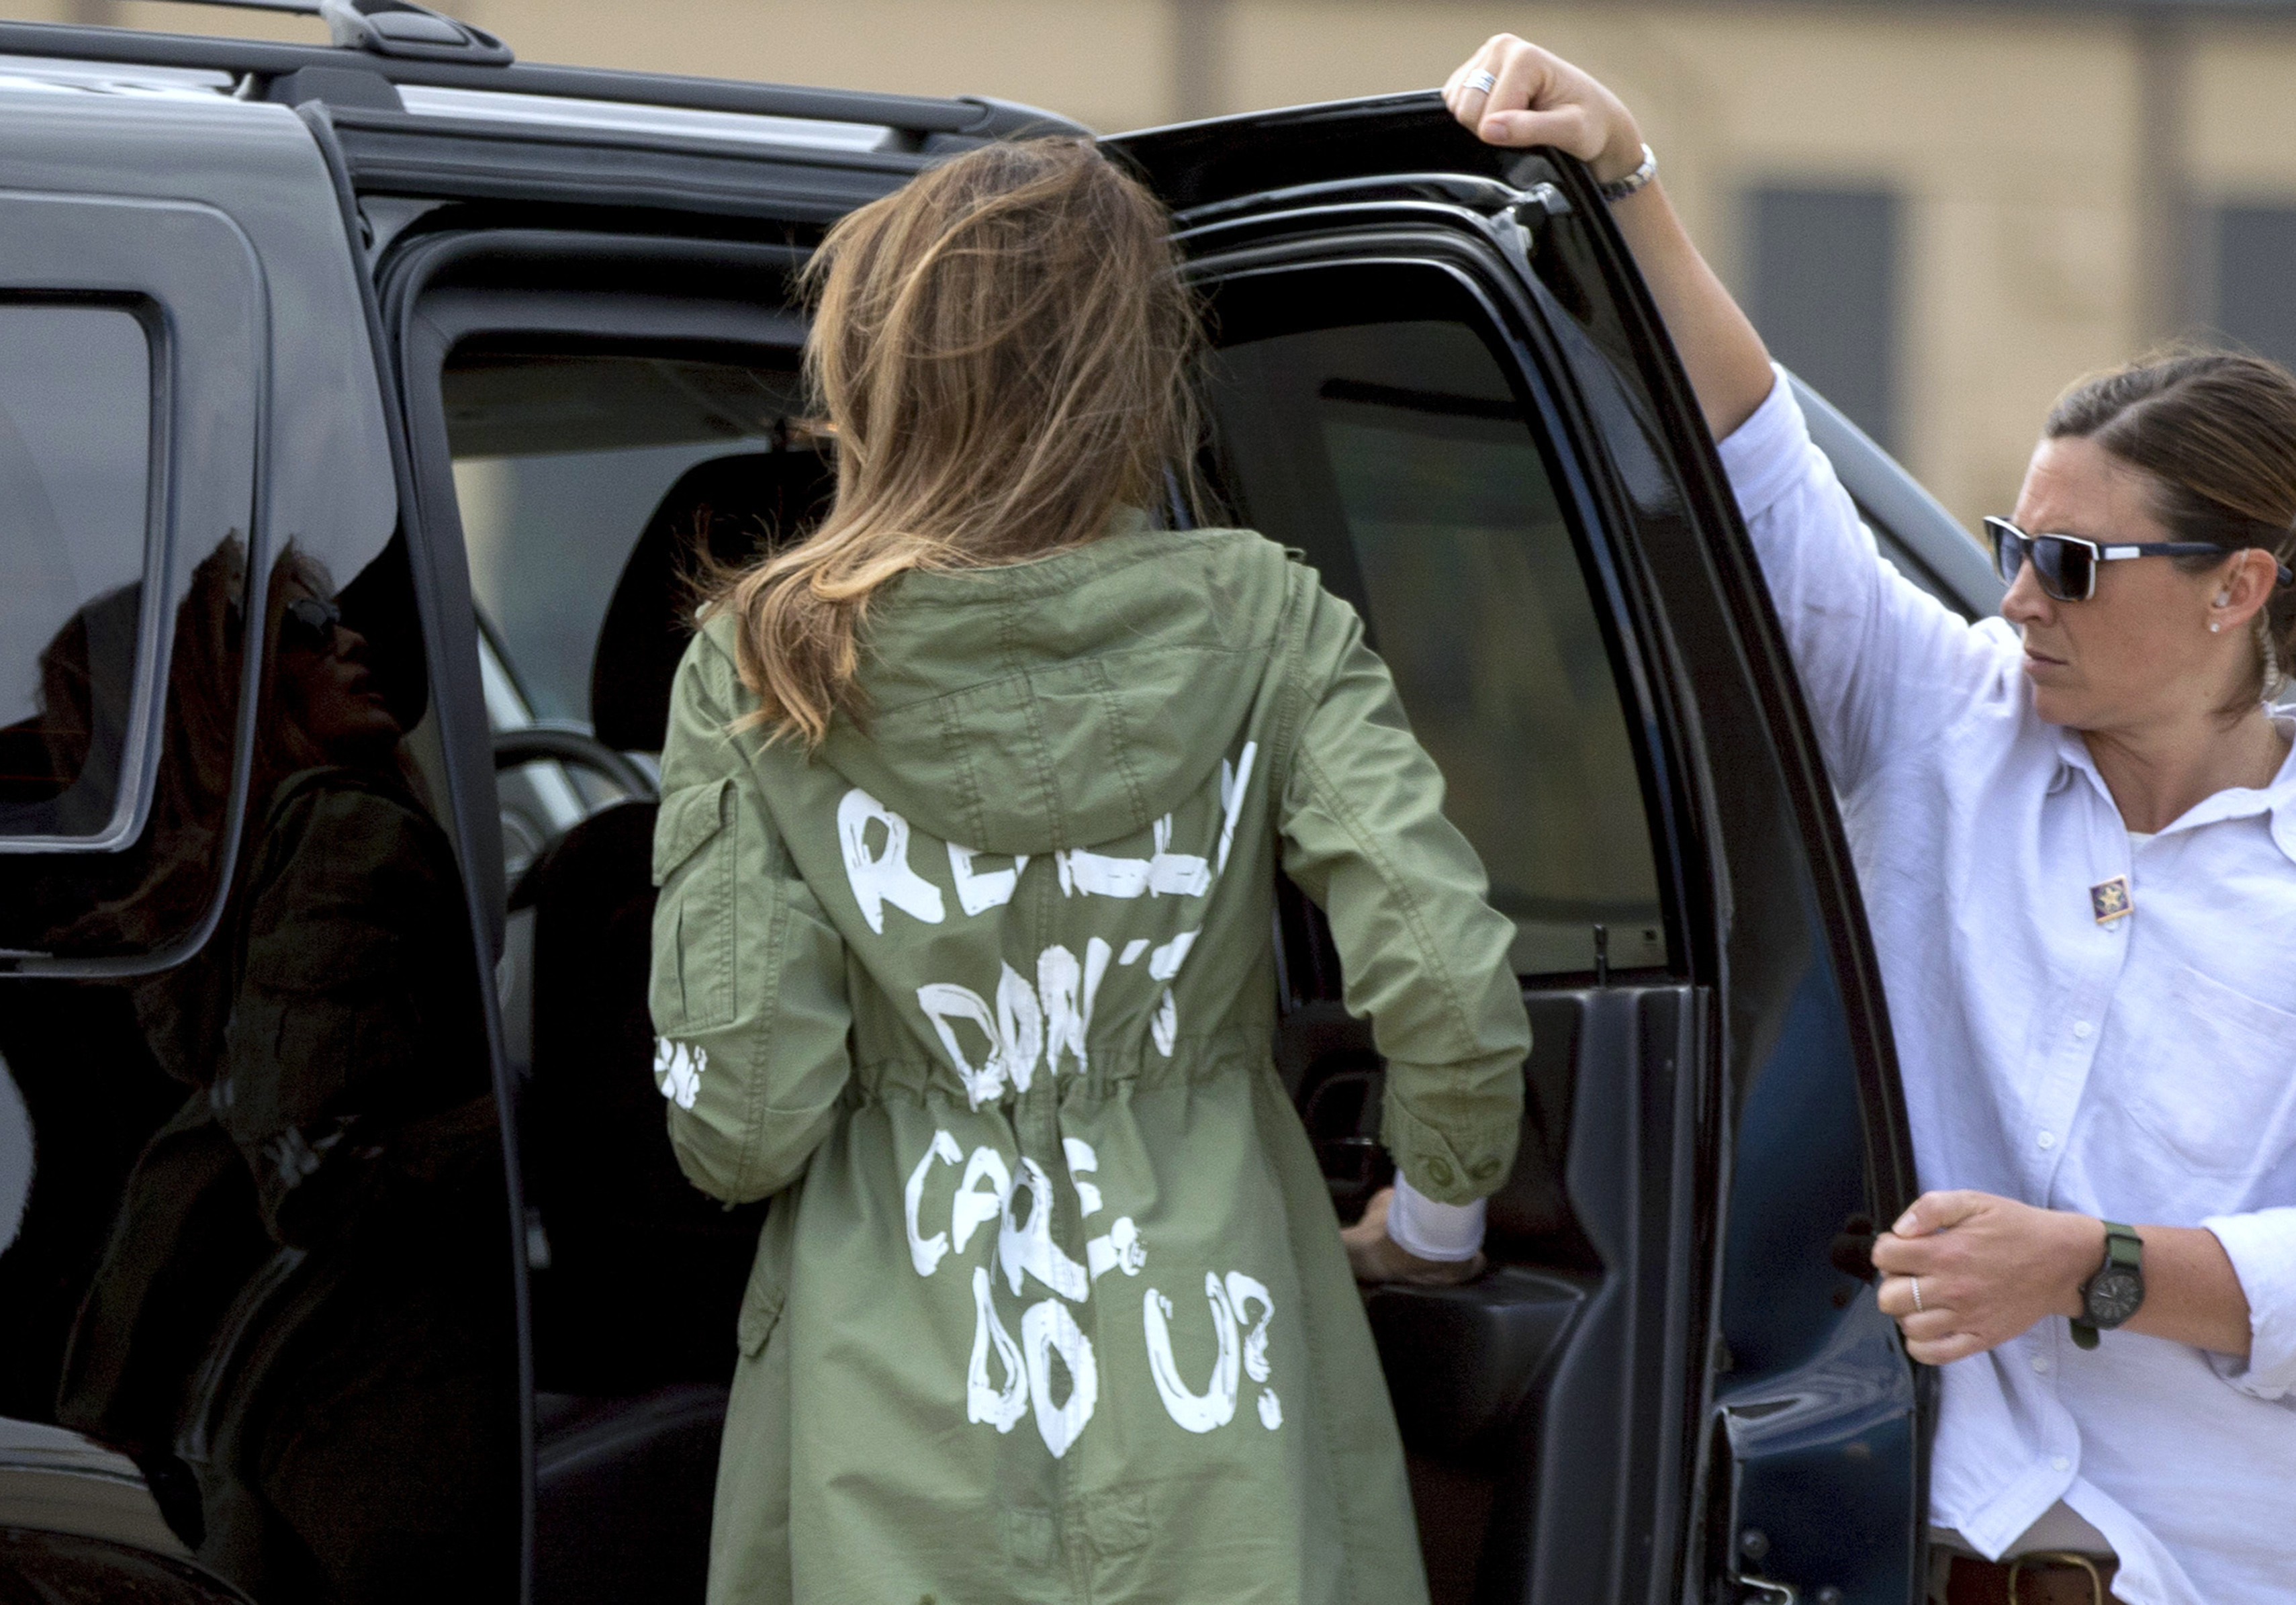 <div class='meta'><div class='origin-logo' data-origin='AP'></div><span class='caption-text' data-credit='AP'>First lady Melania Trump arrives at Andrews Air Force Base after visiting the Upbring New Hope Children Center run in McAllen, Texas. (AP Photo/Andrew Harnik)</span></div>